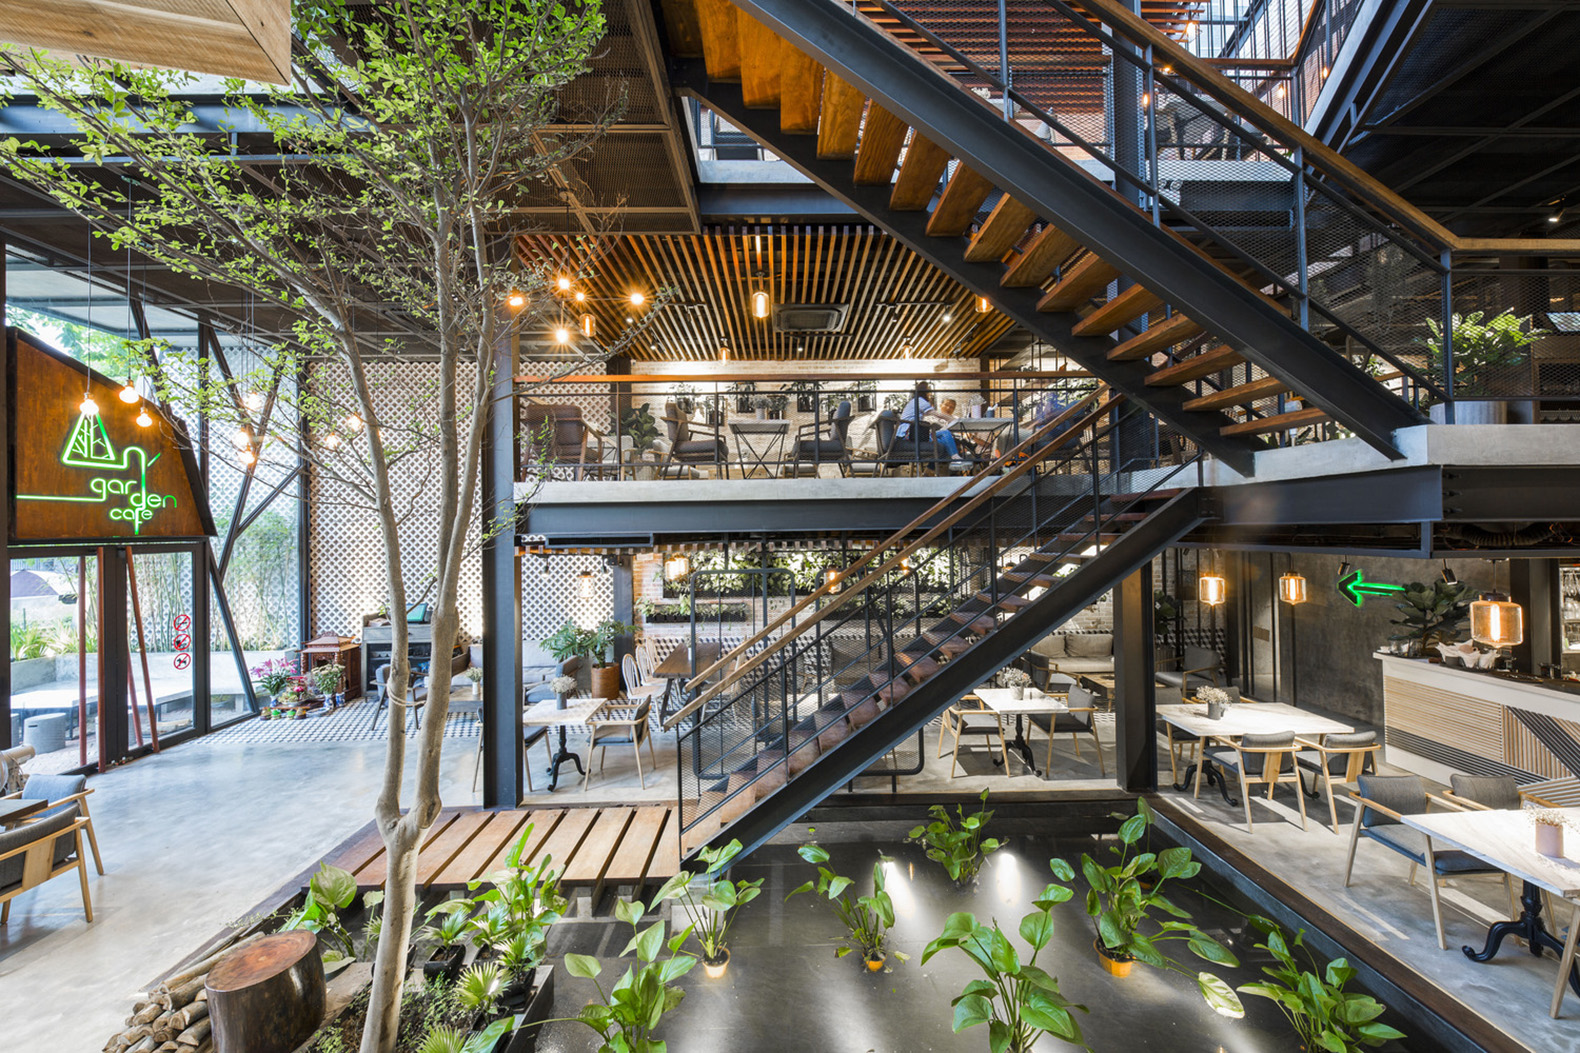 Coffee Shop Euro-garden This Café In Vietnam Is A Modern Day Hanging Gardens Of